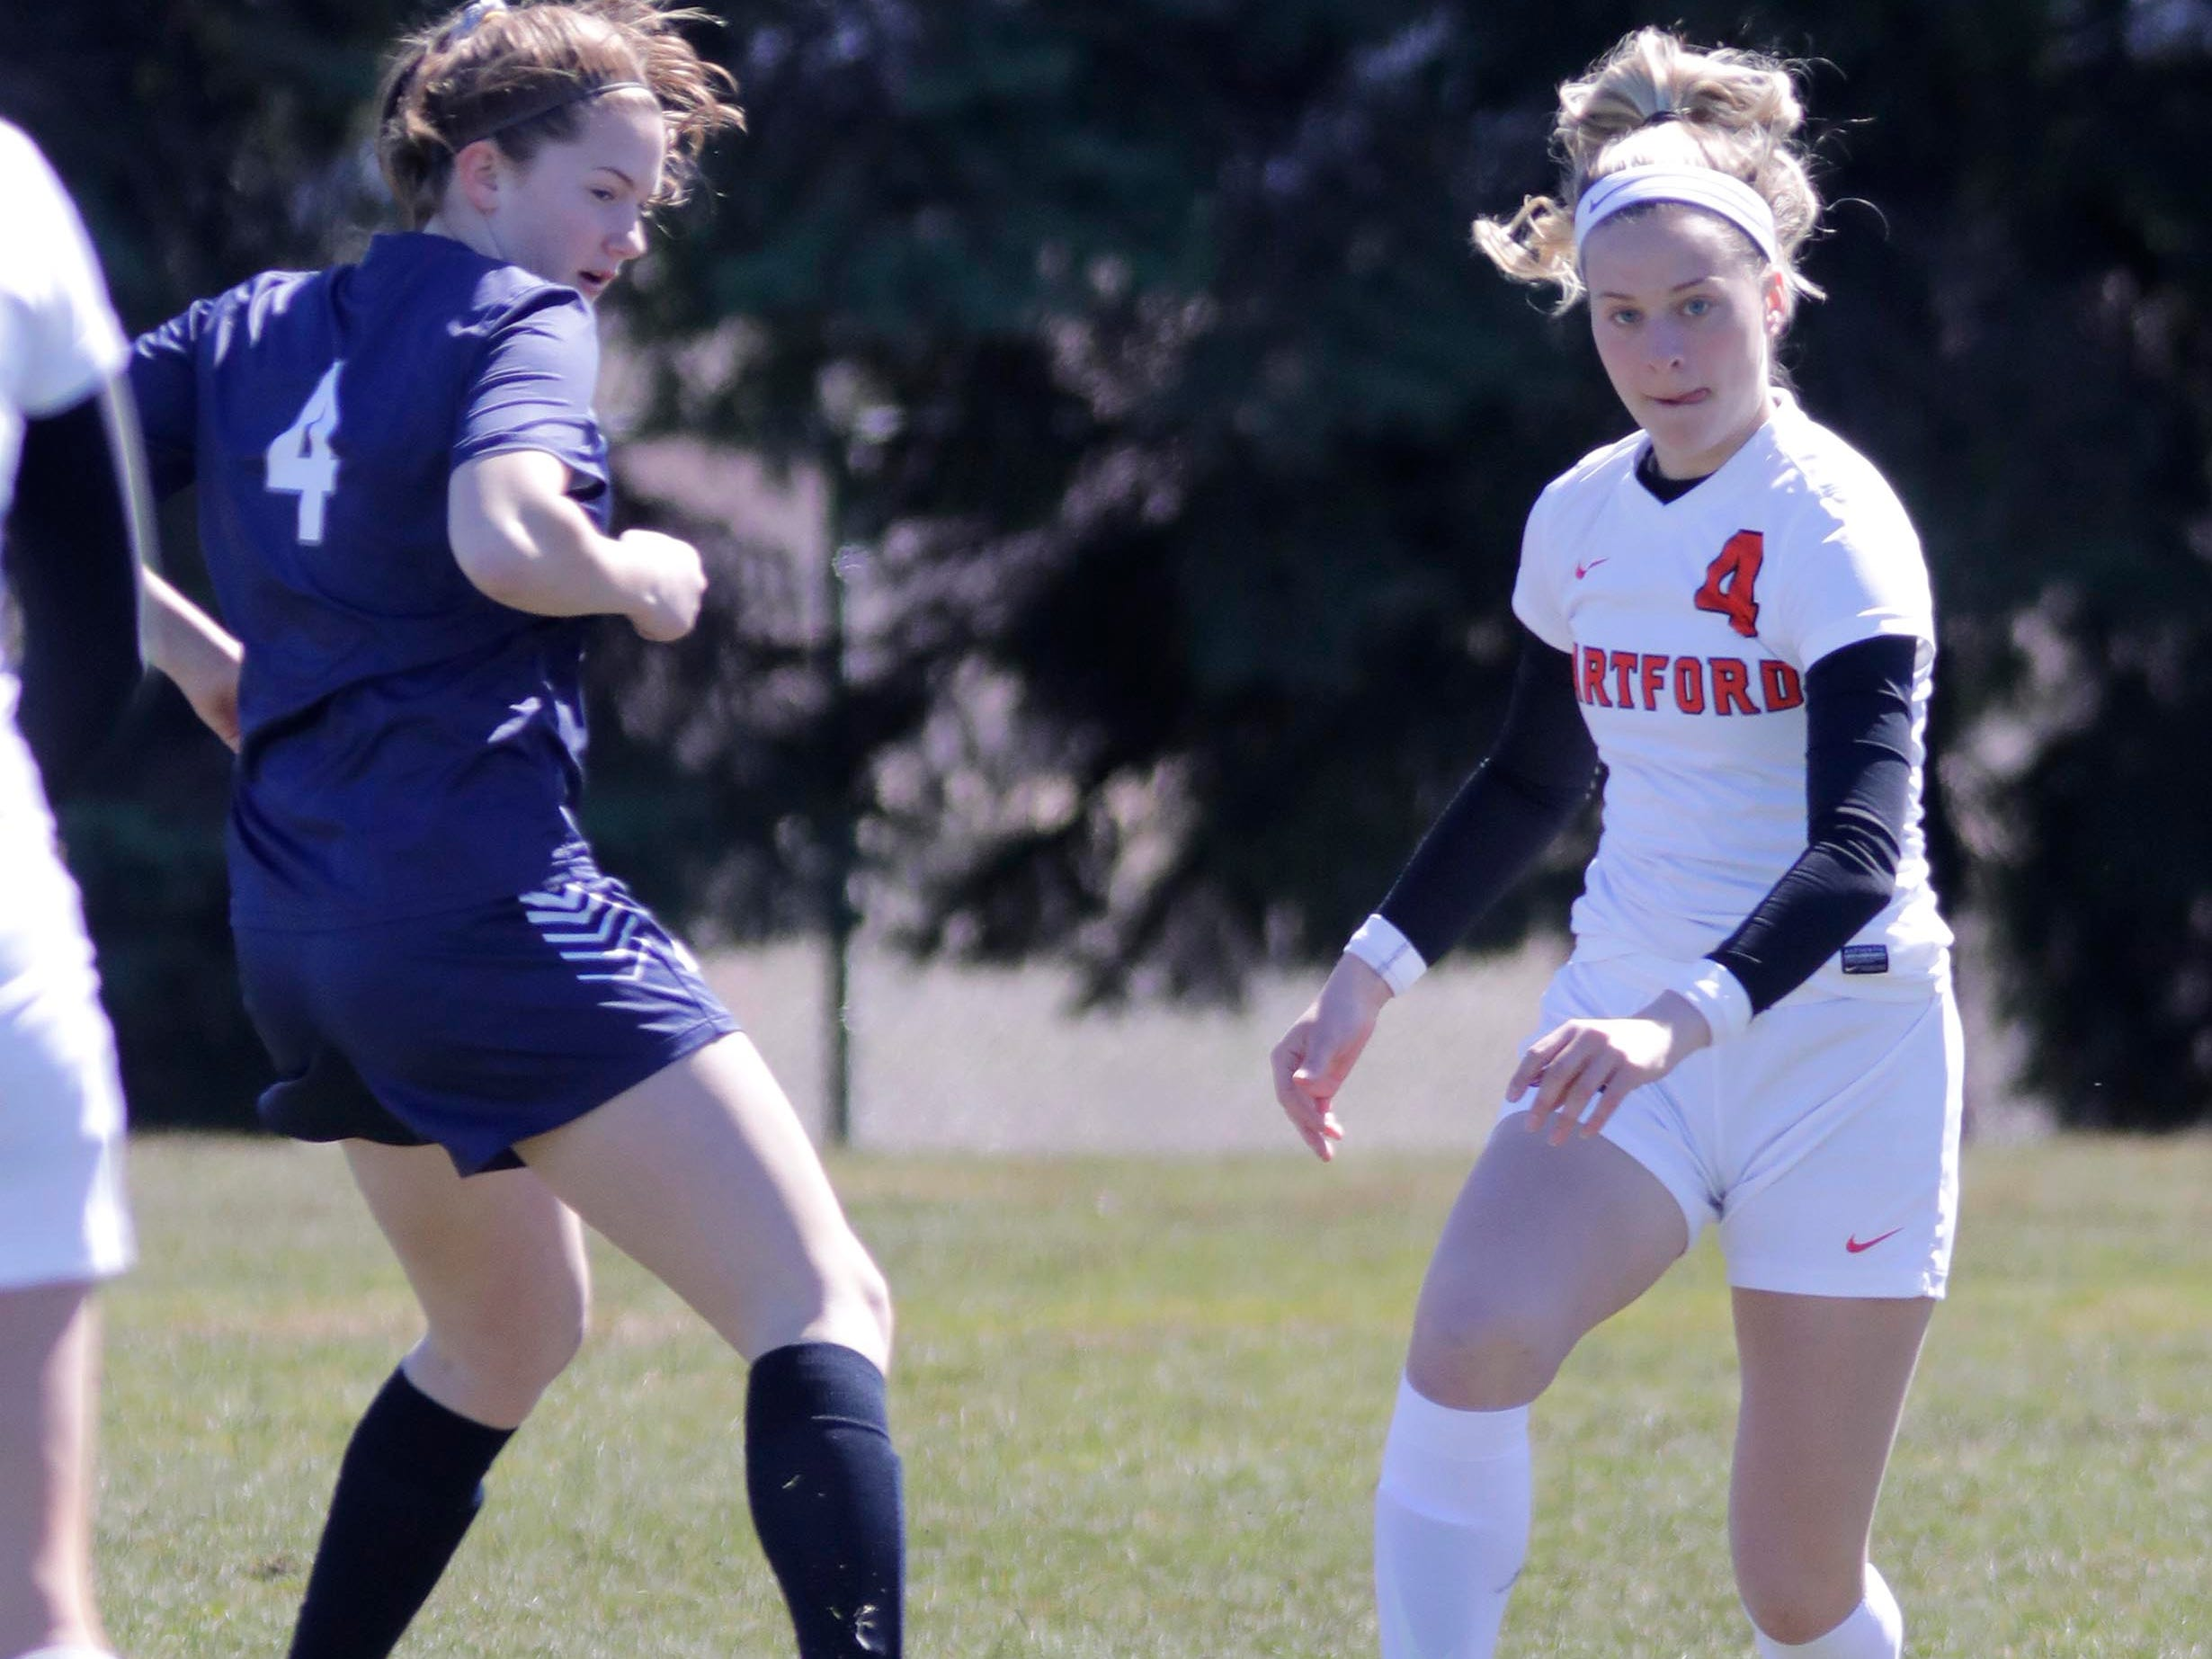 Sheboygan North's Maggie Mueller (4) looks at the ball as Hartford's Maddie Hoxworth (4) looks to pass the ball at the Sheboygan South Soccer tournament, Saturday, April 20, 2019, in Sheboygan, Wis.